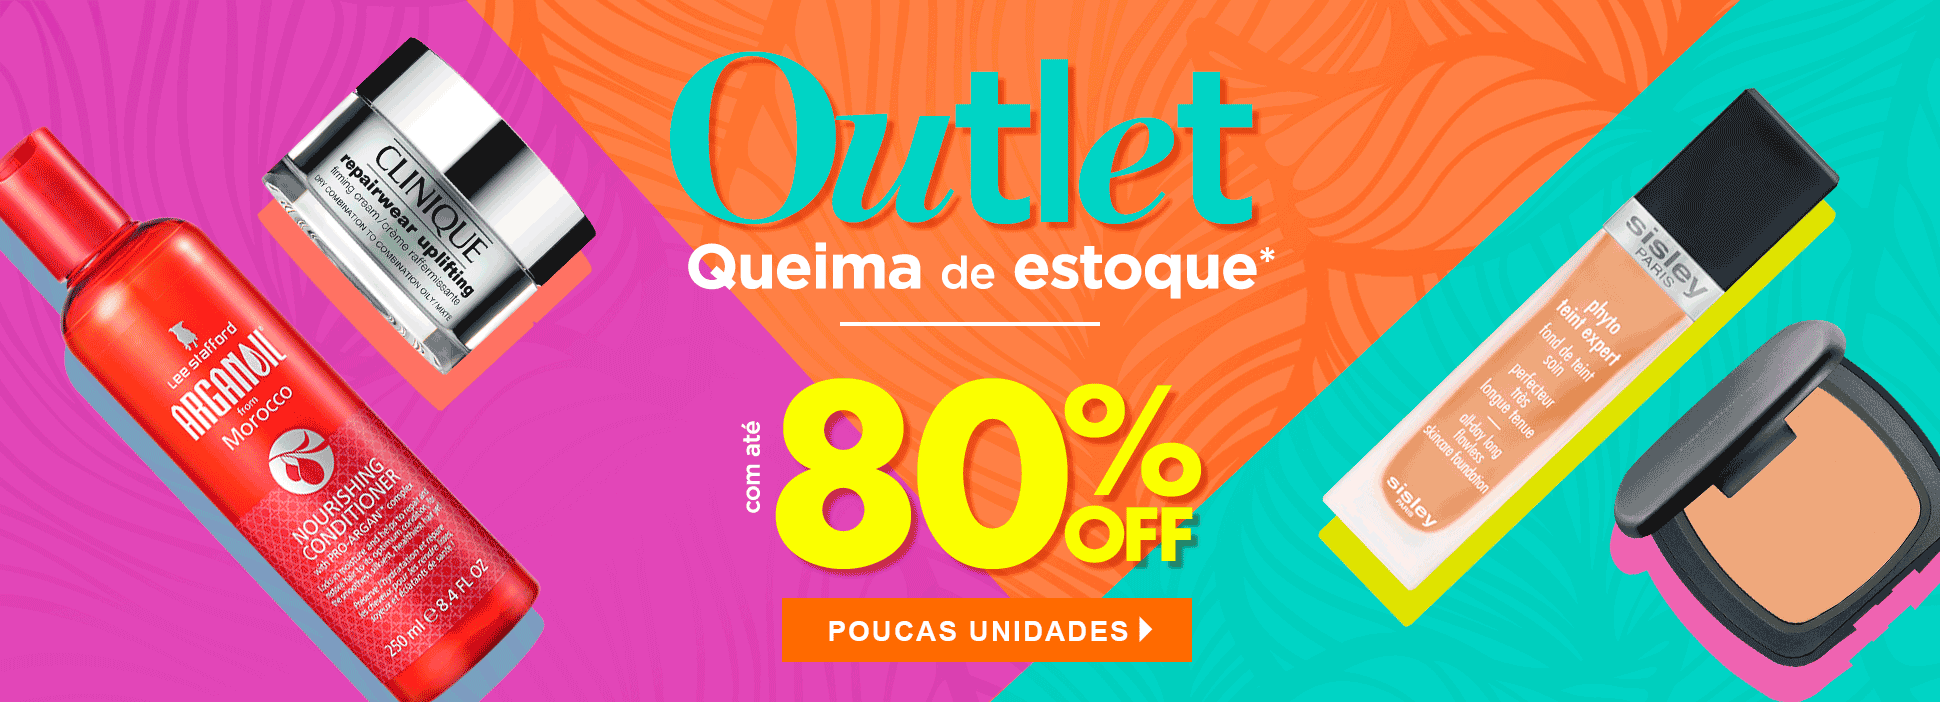 Home: outlet